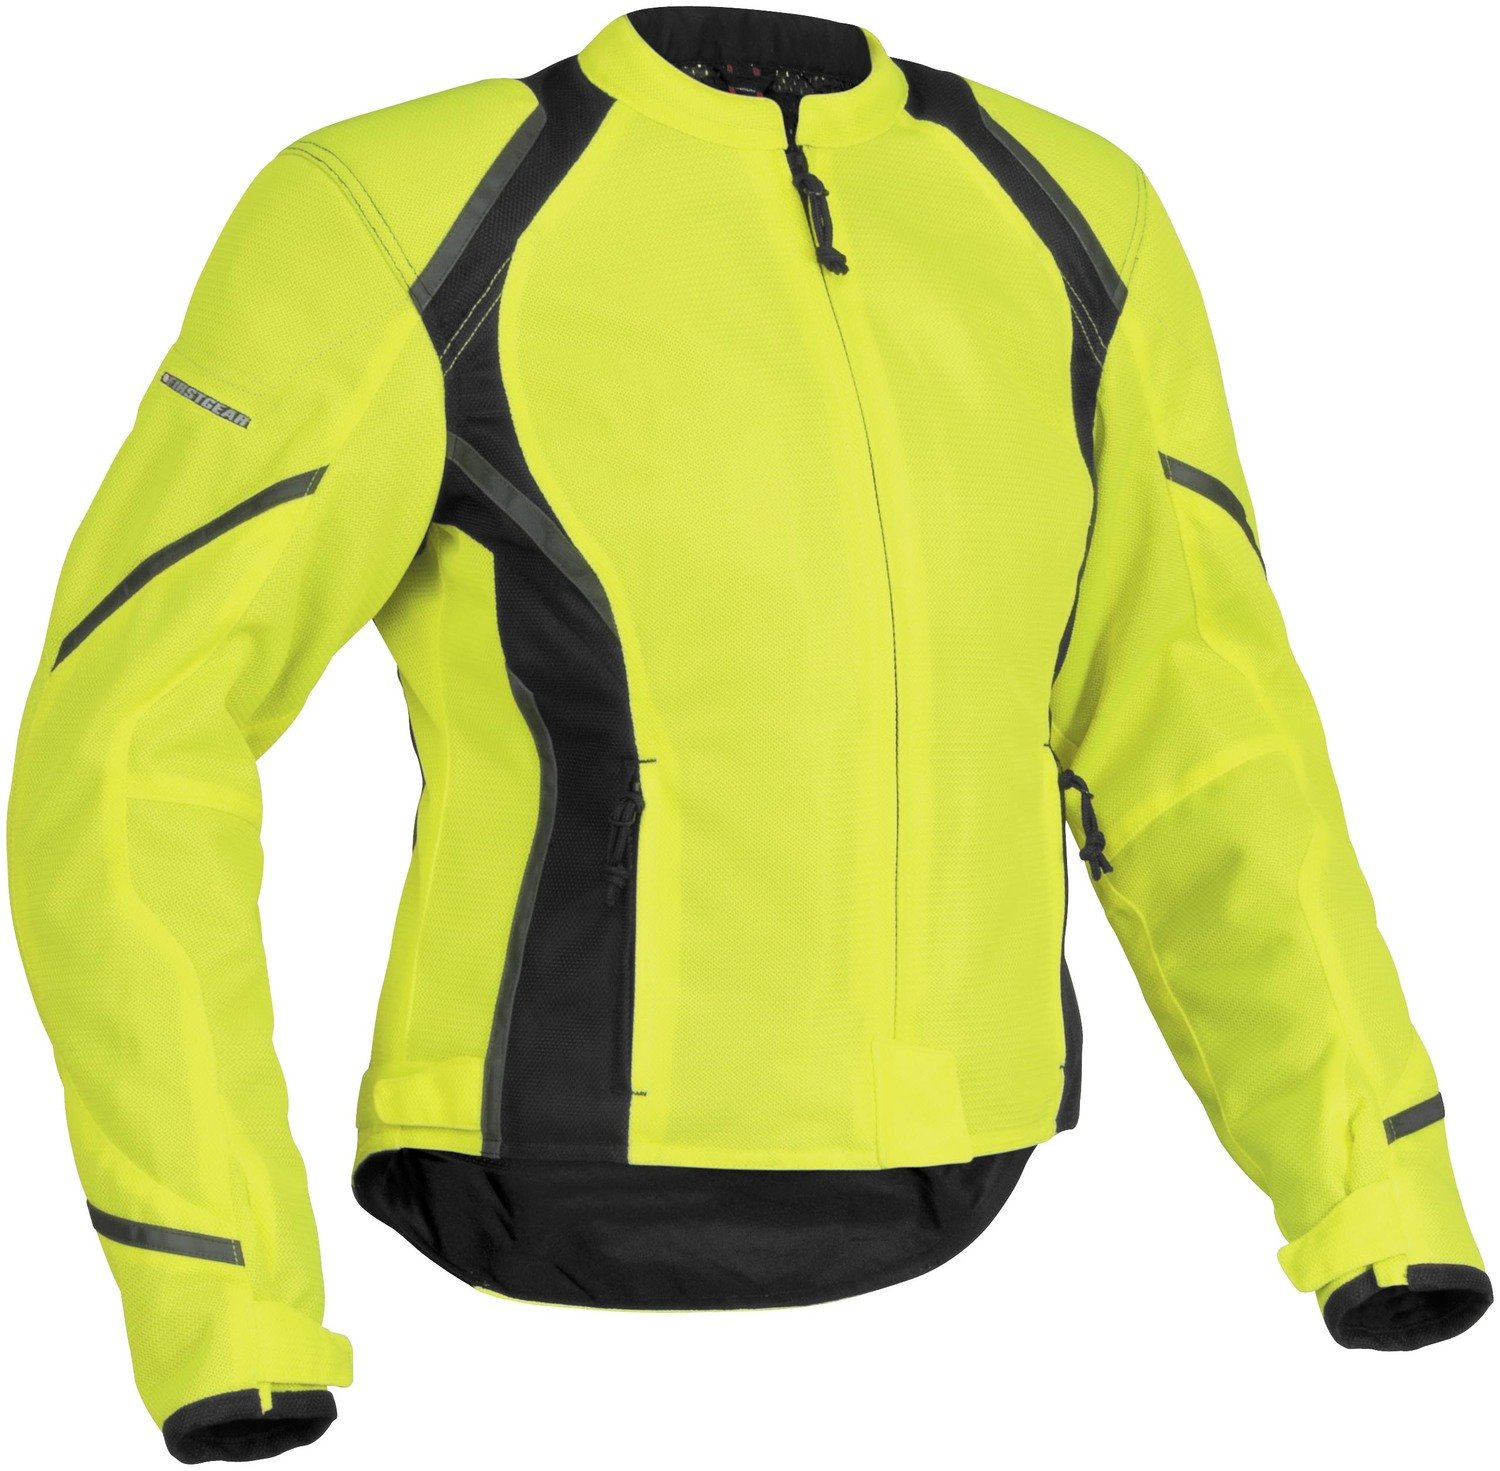 FirstGear Tex Women's Mesh Sports Bike Racing Motorcycle Jacket - DayGlo / Large